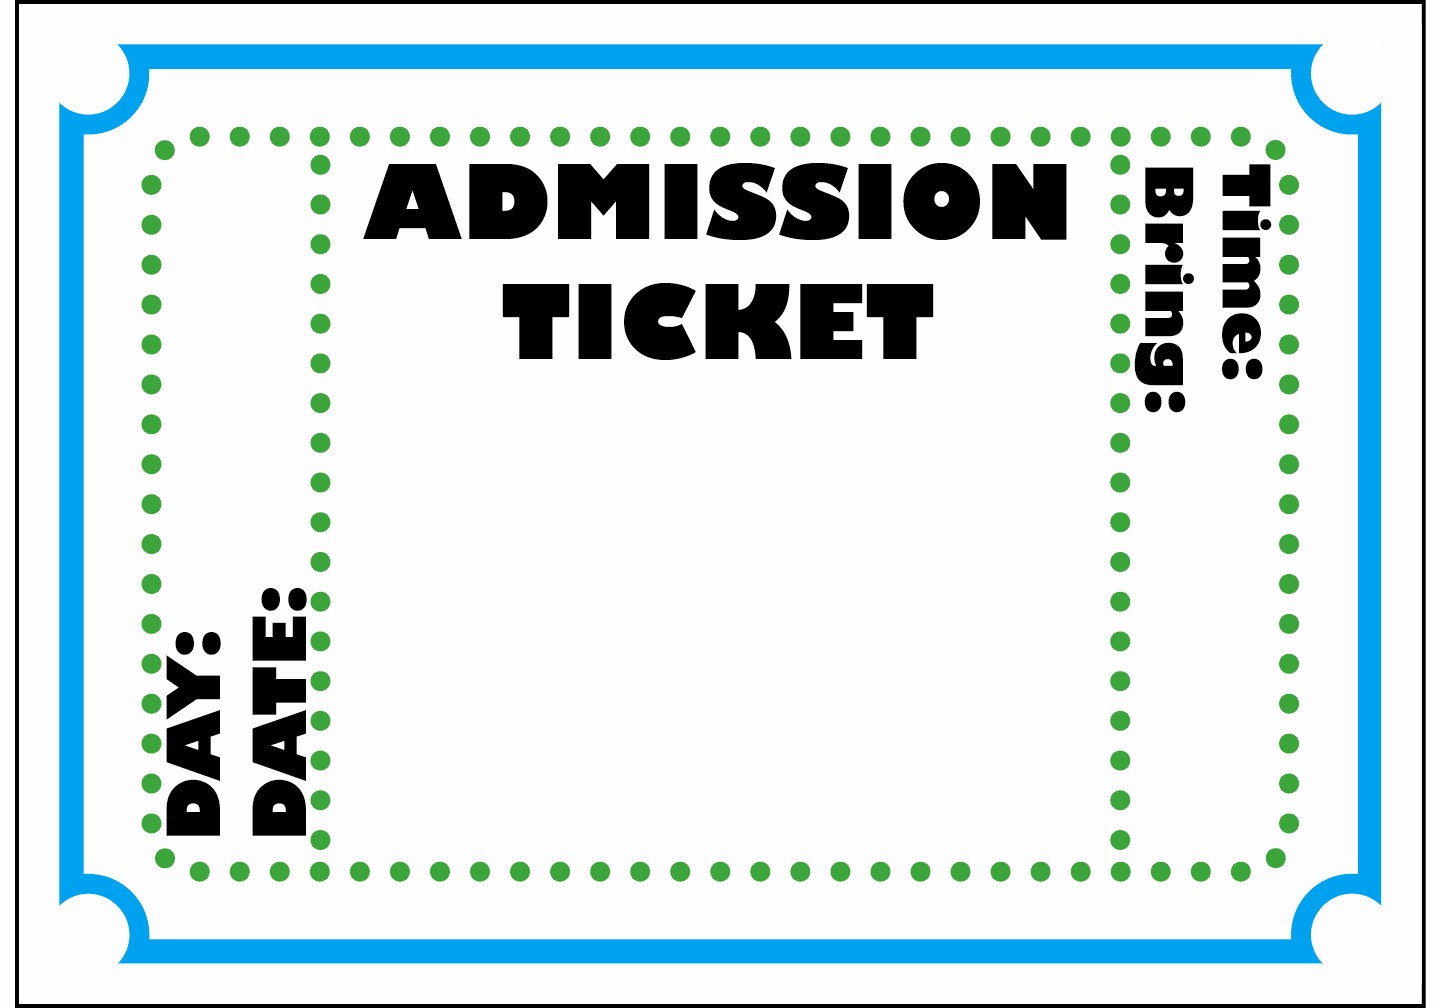 Blank Admit One Ticket Template Lovely Free Printable Admit E Ticket Template Clipart Best